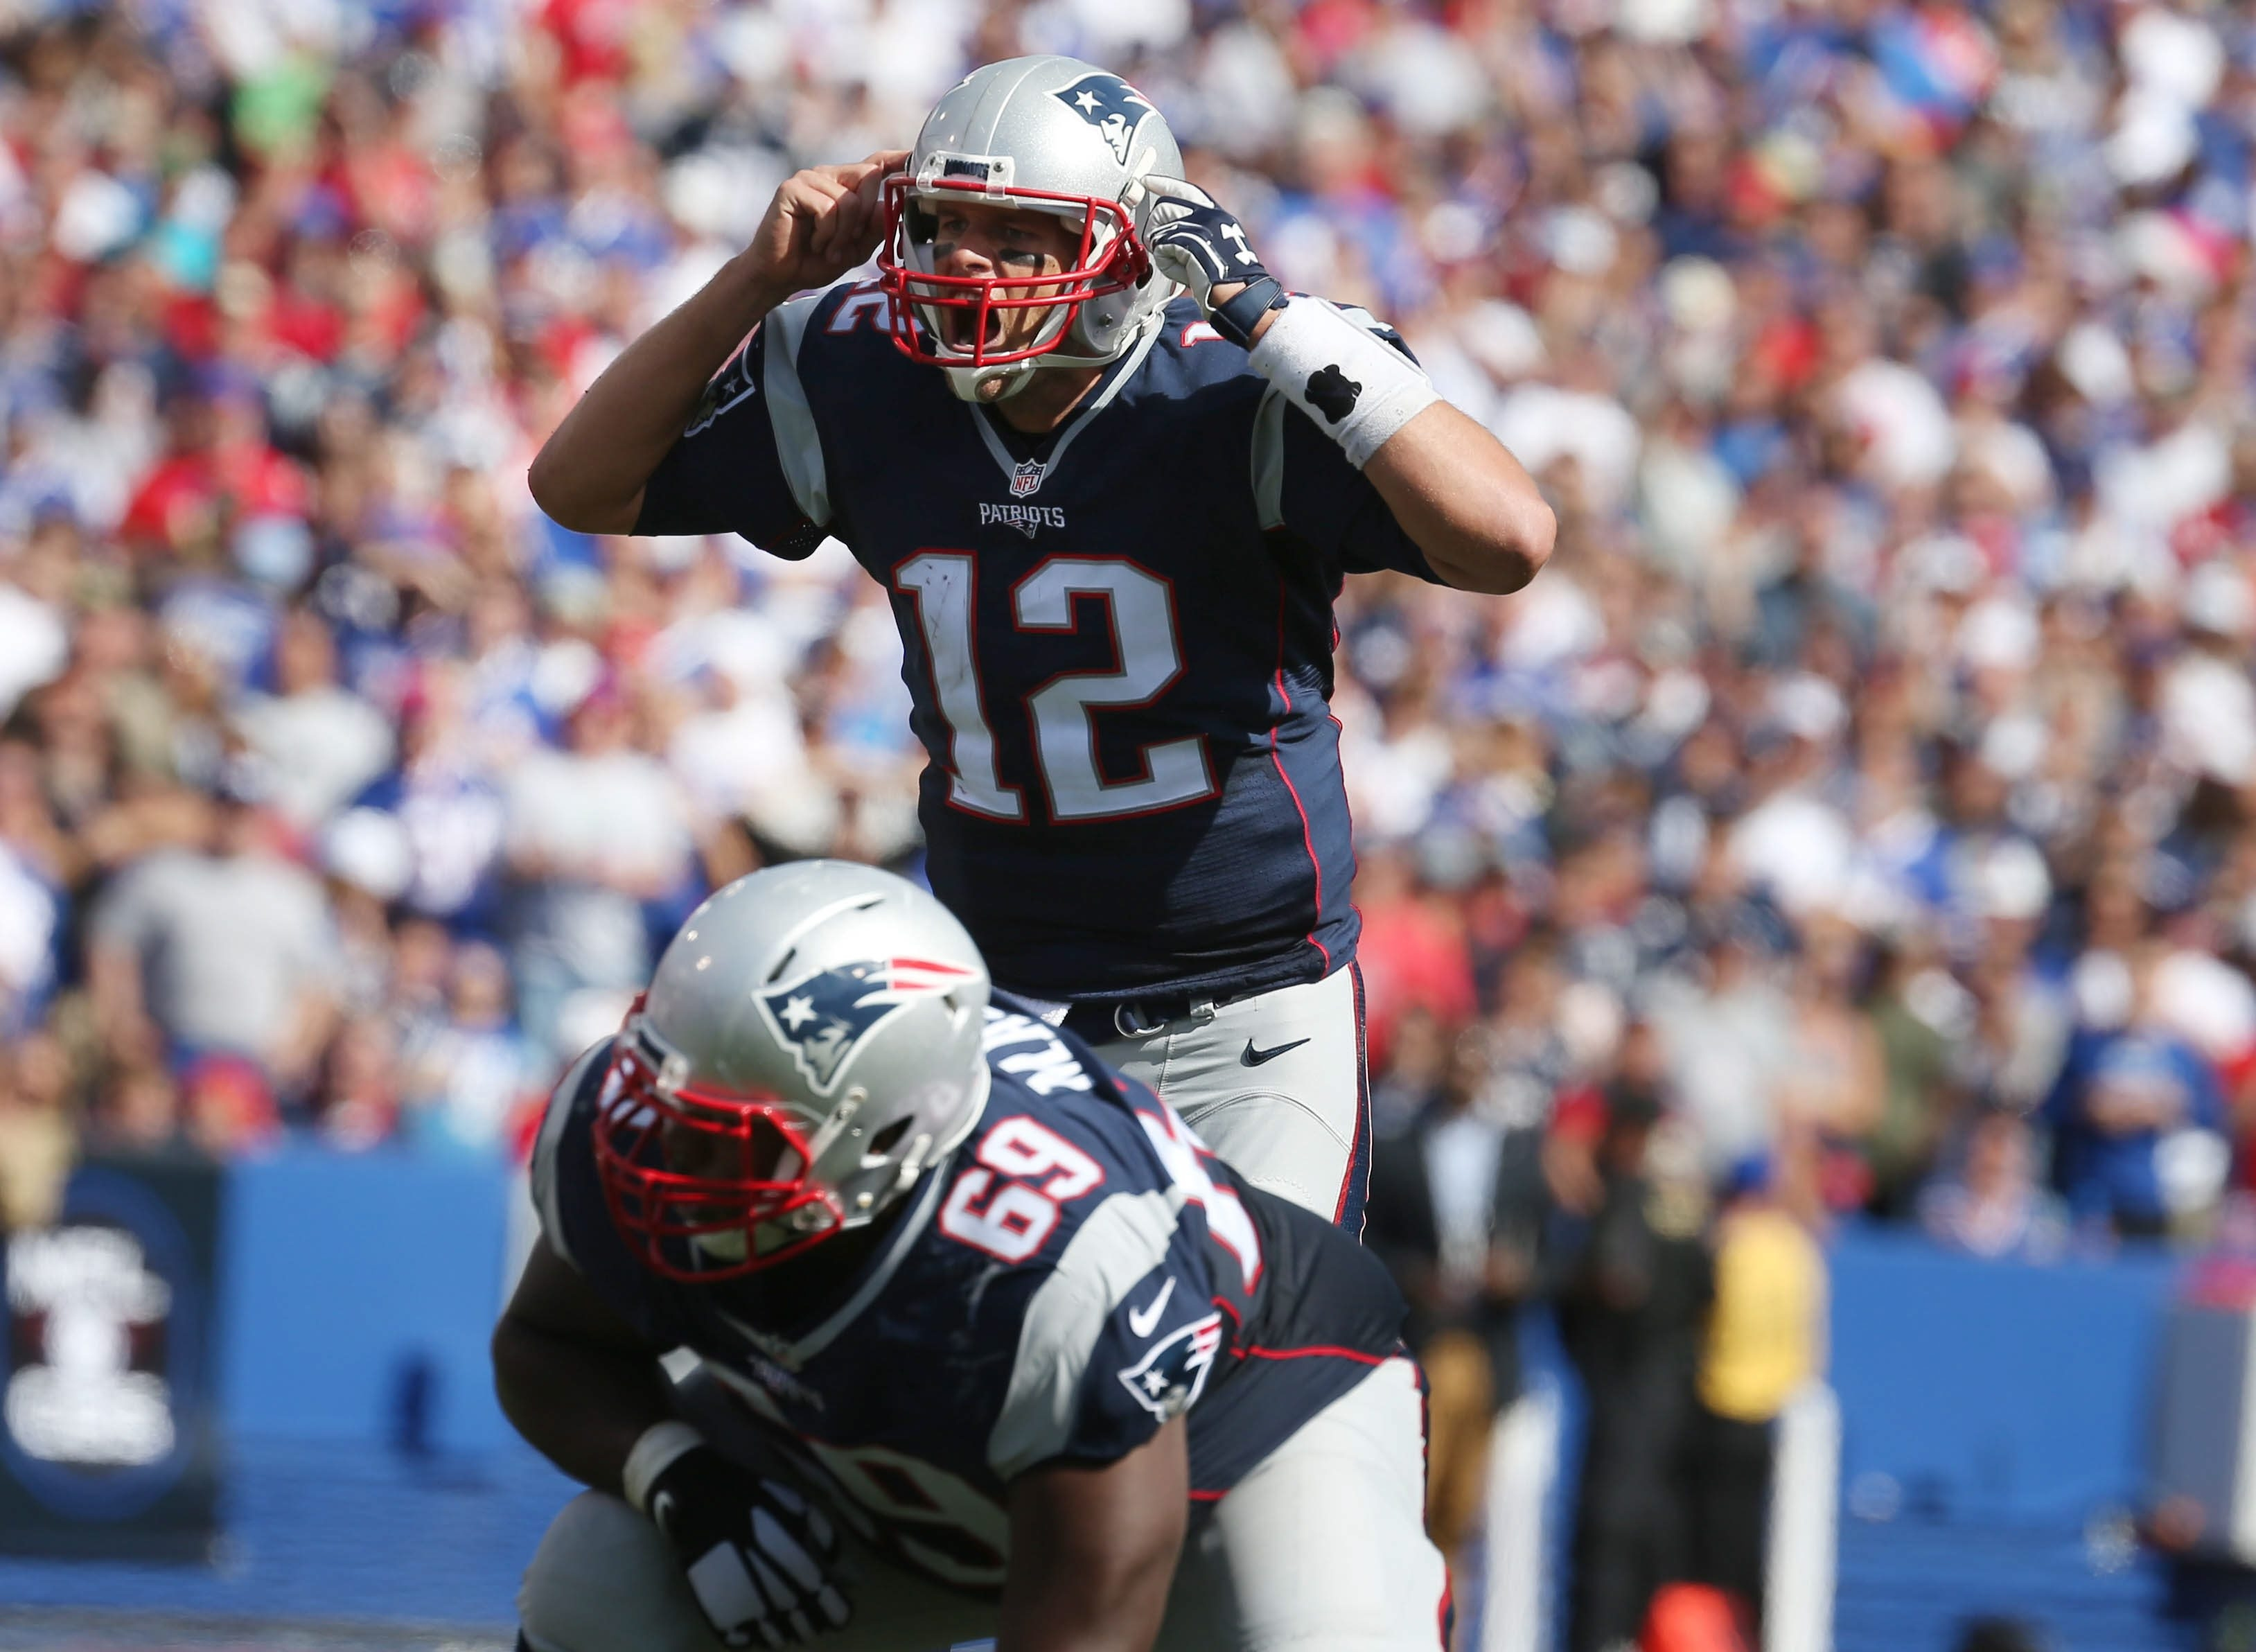 Patriots quarterback Tom Brady had some trouble hearing amid the din of Ralph Wilson Stadium on Sept. 20, but it didn't keep him from shredding the Bills for 466 yards and three touchdowns. (James P. McCoy/Buffalo News)